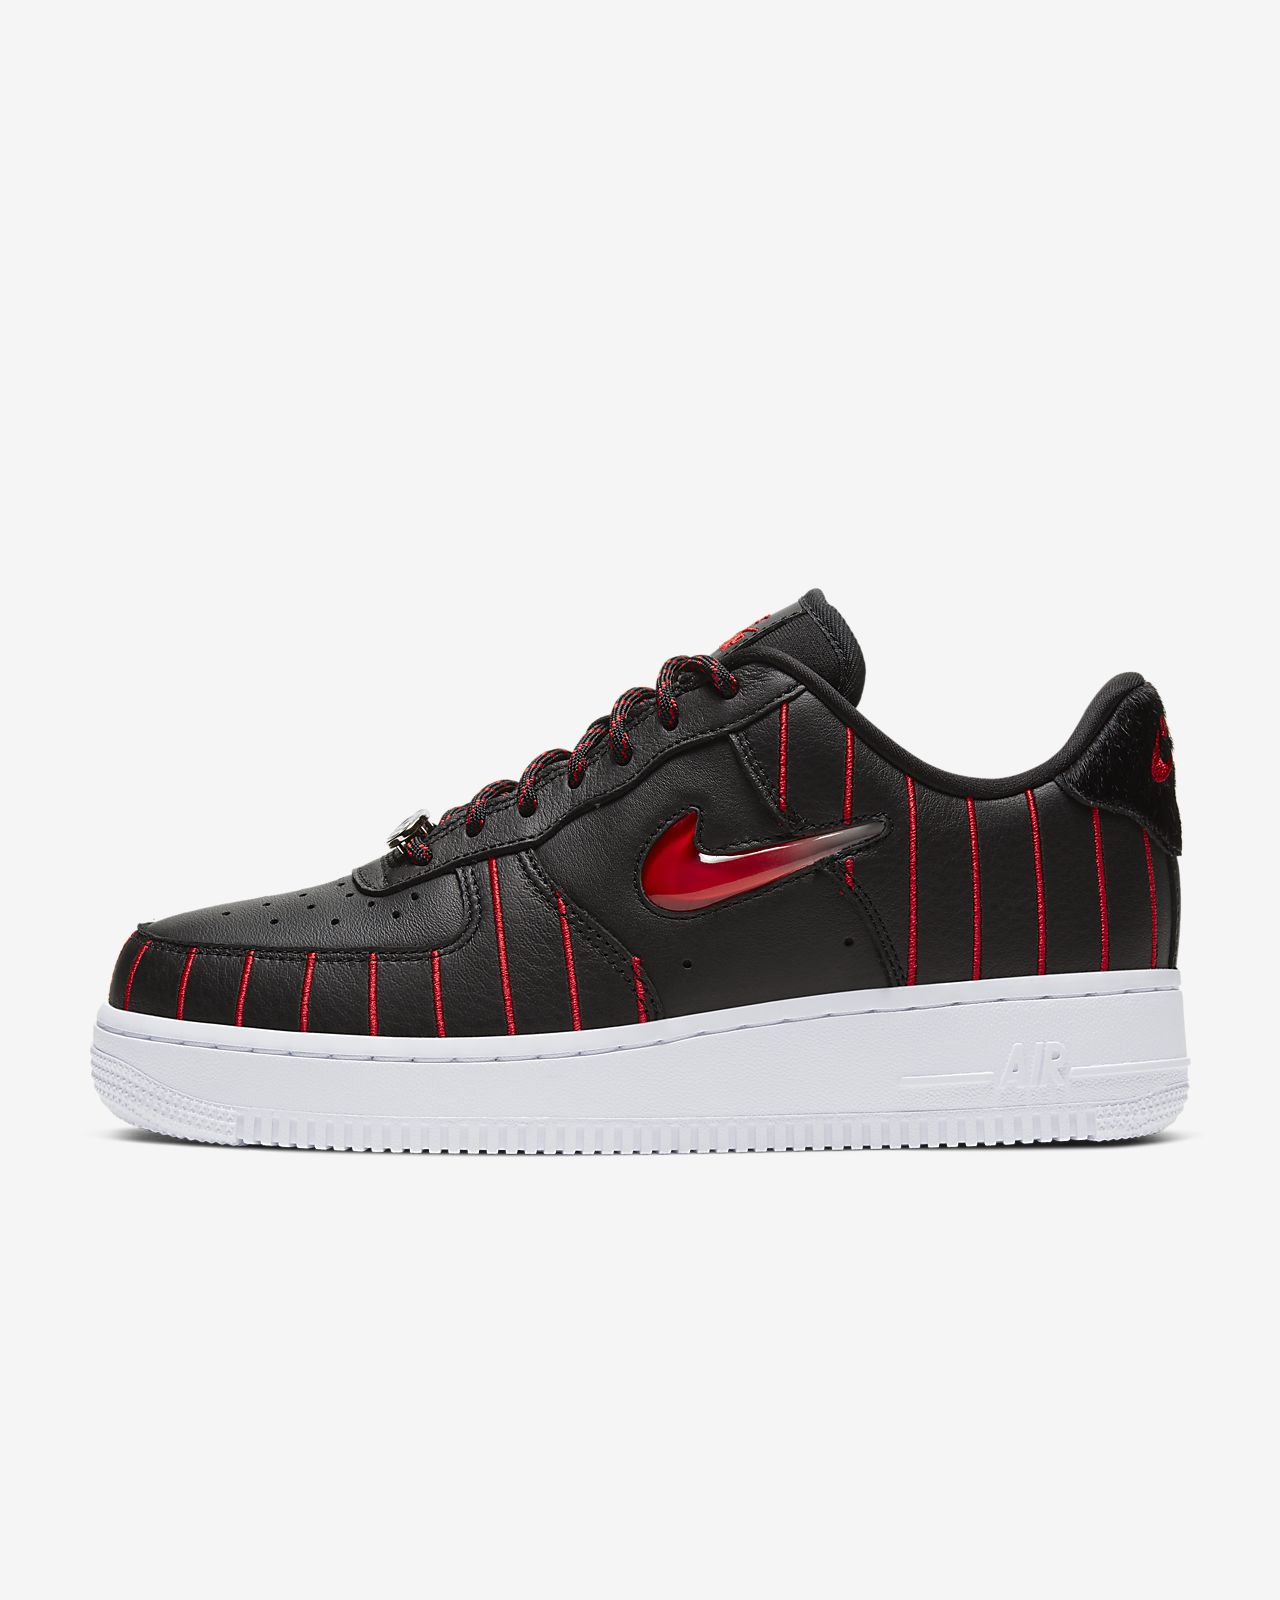 Chaussure Nike Air Force 1 Jewel pour Femme